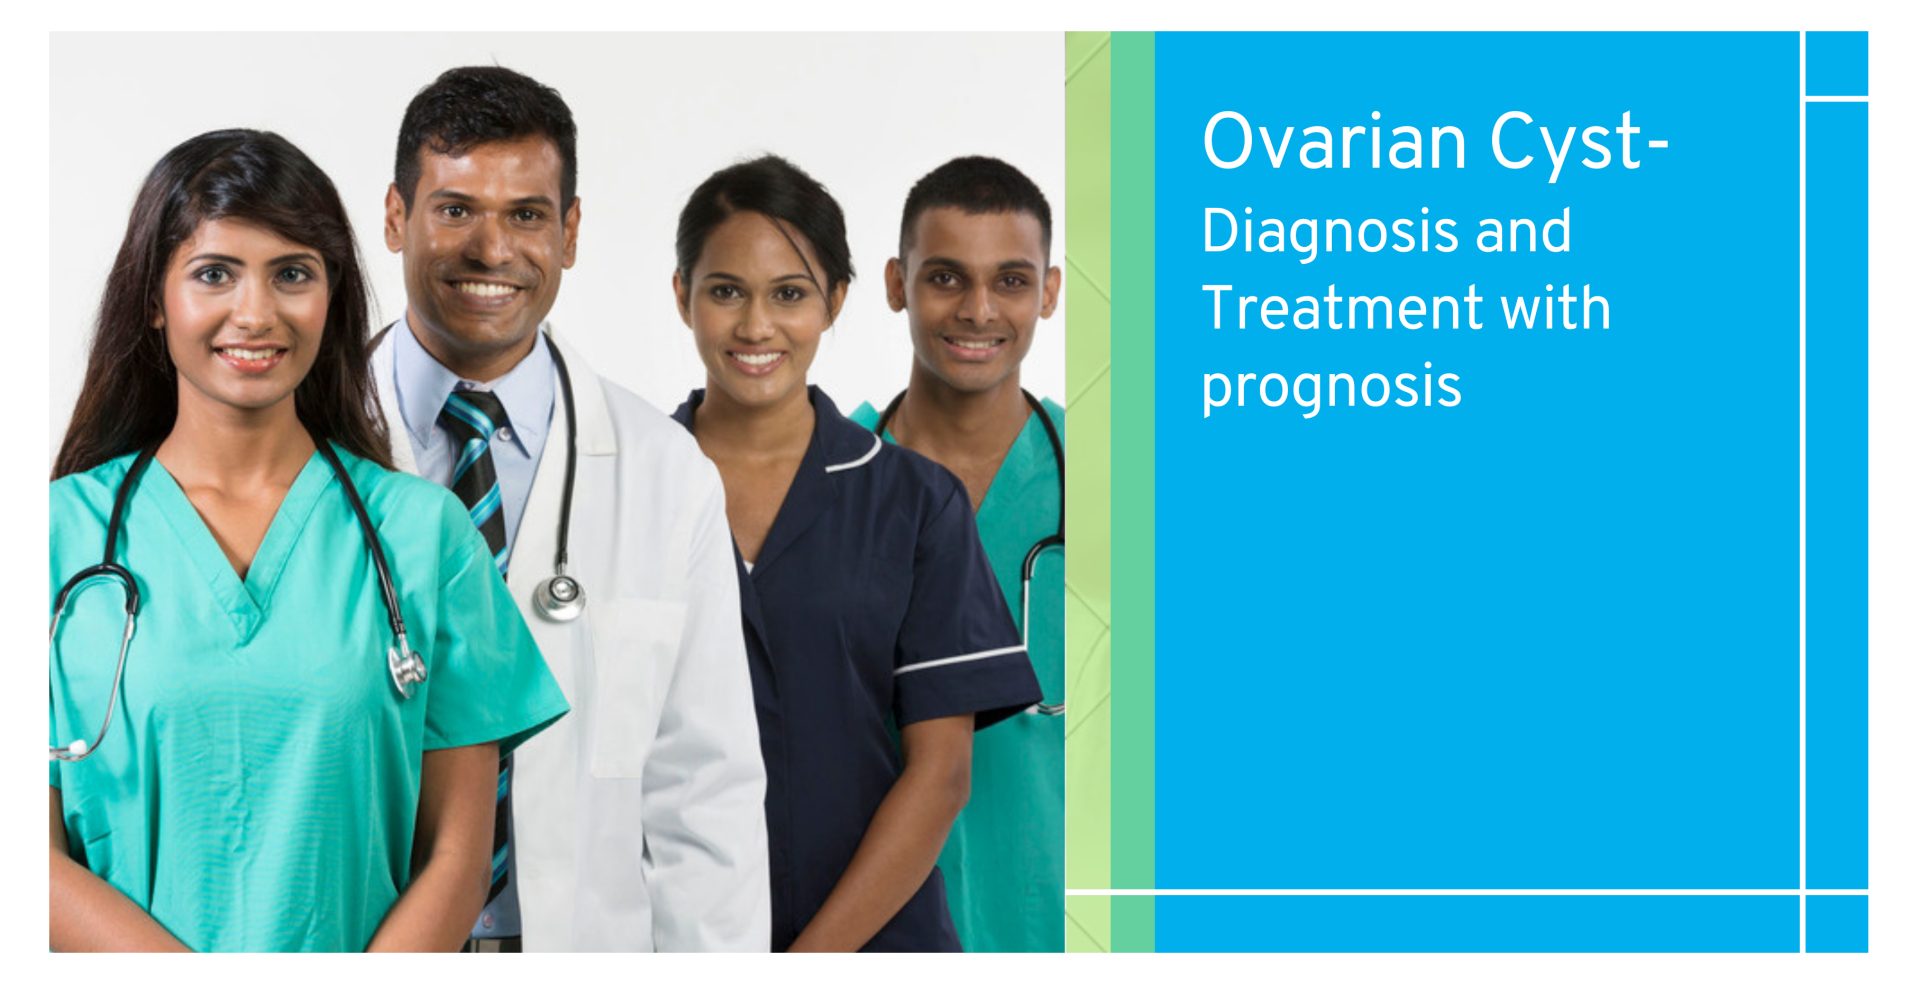 Ovarian Cyst- Diagnosis and Treatment with prognosis